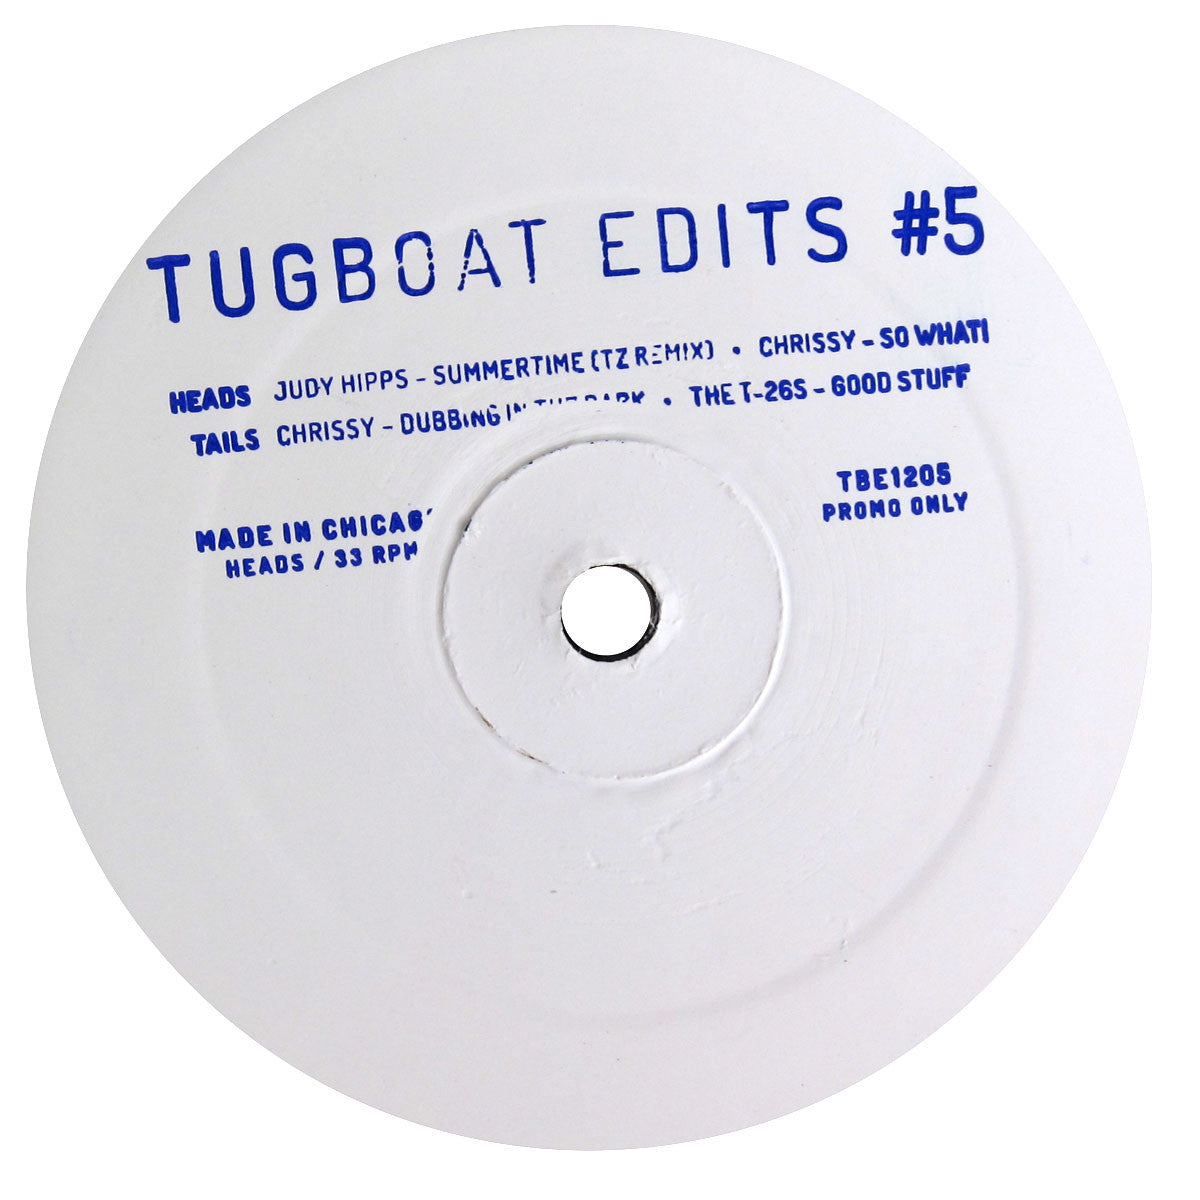 Tugboat Edits: Vol. 5 (The B-52's, Modern Romance, Mike Mareen) Vinyl 12""